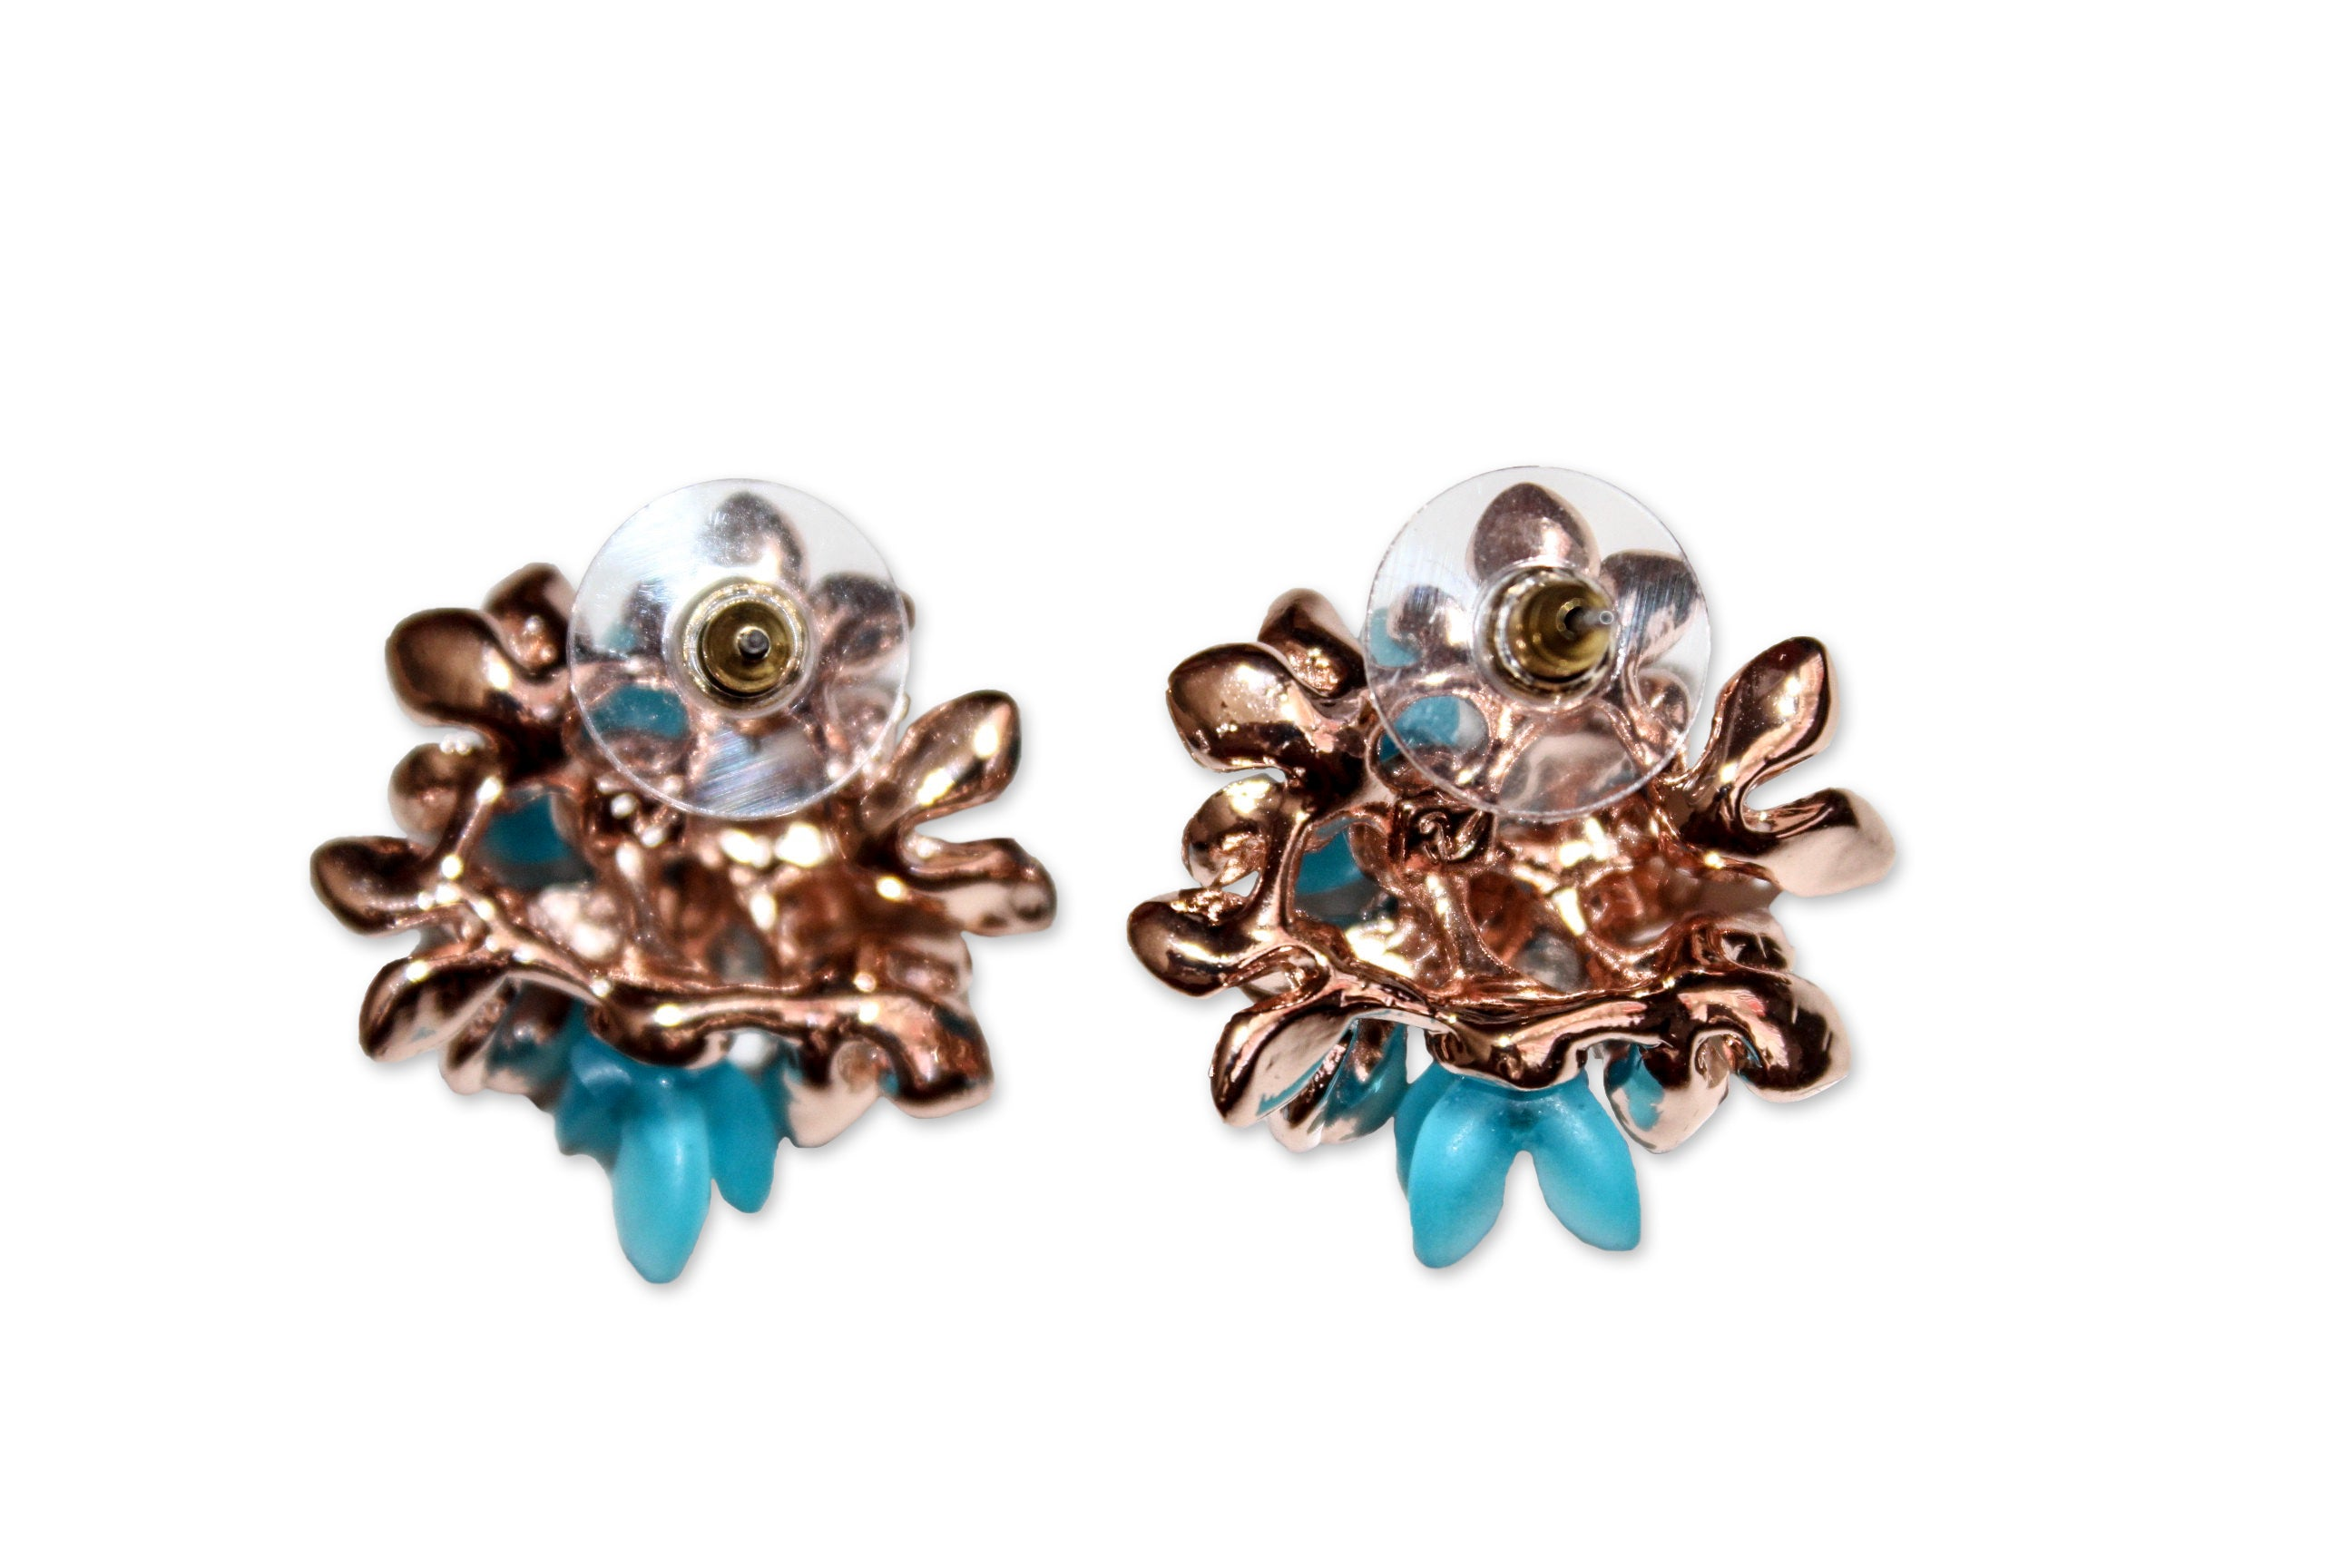 Ying Cai _ Flower earrings 3